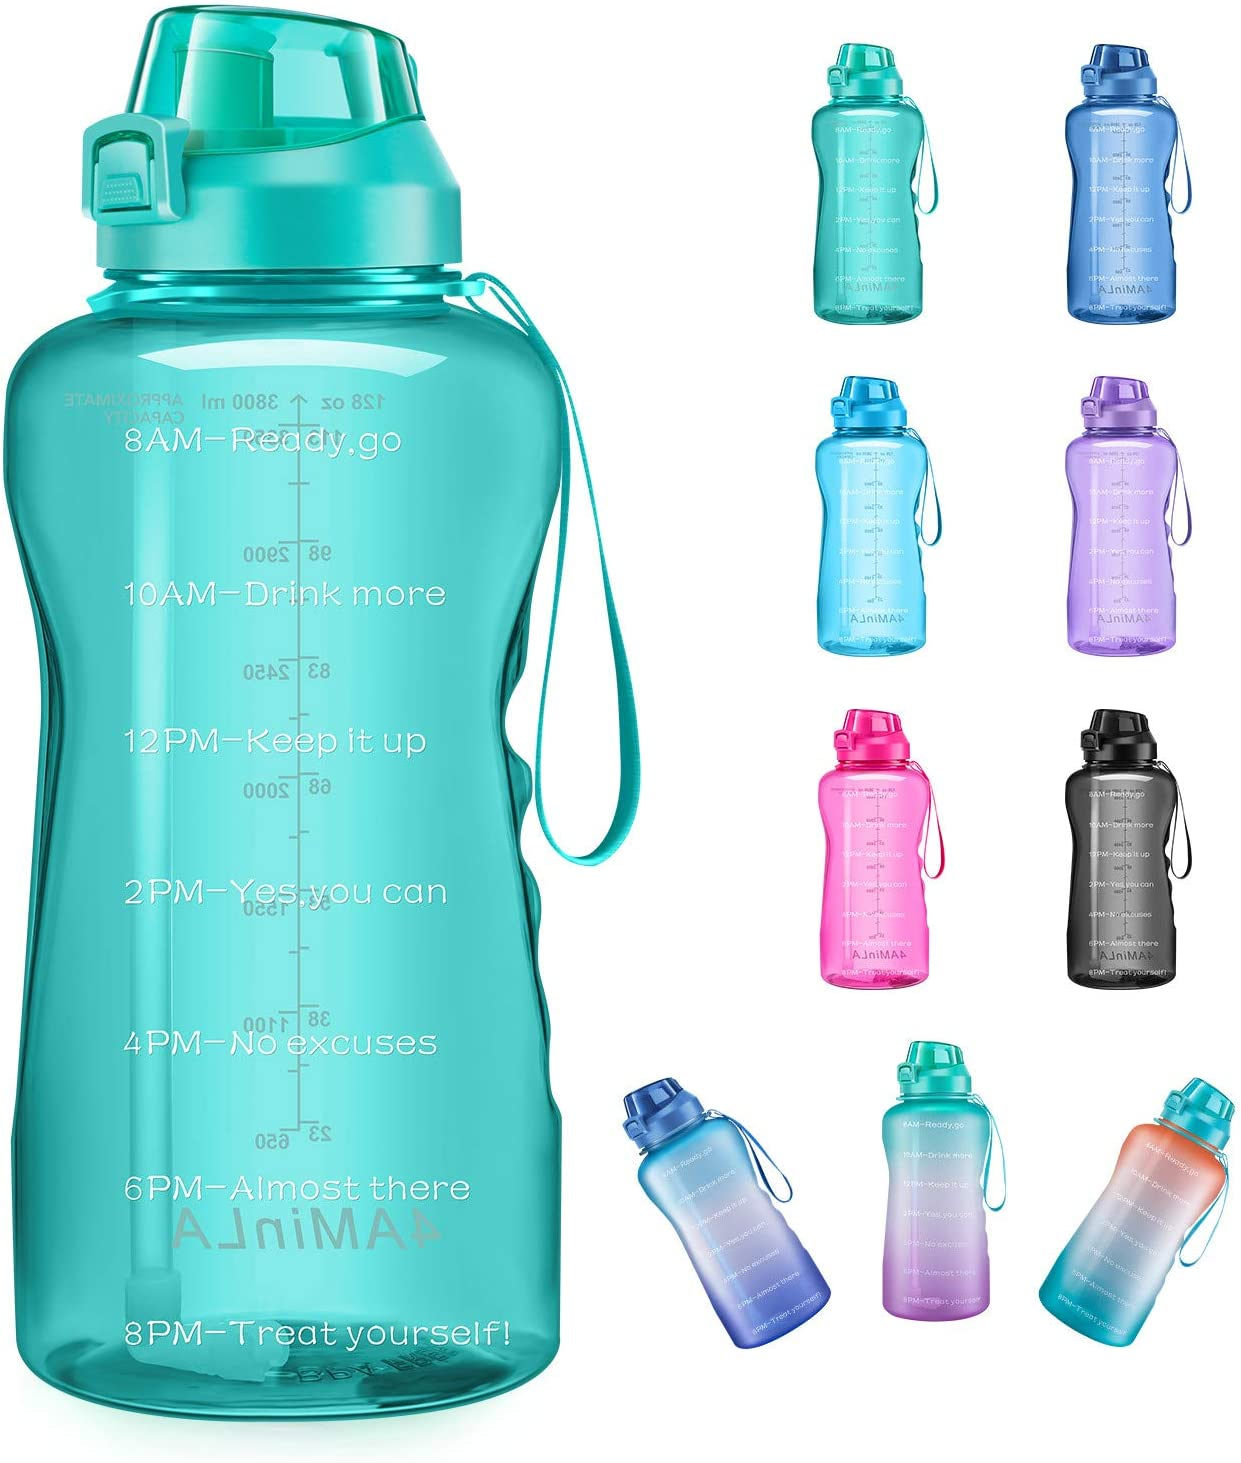 4aminla Motivational Water Bottle Gallon Jug With Straw And Time Marker Large Capacity Leakproof Bpa Free Fitness Sports Water Bottle Green Home Kitchen